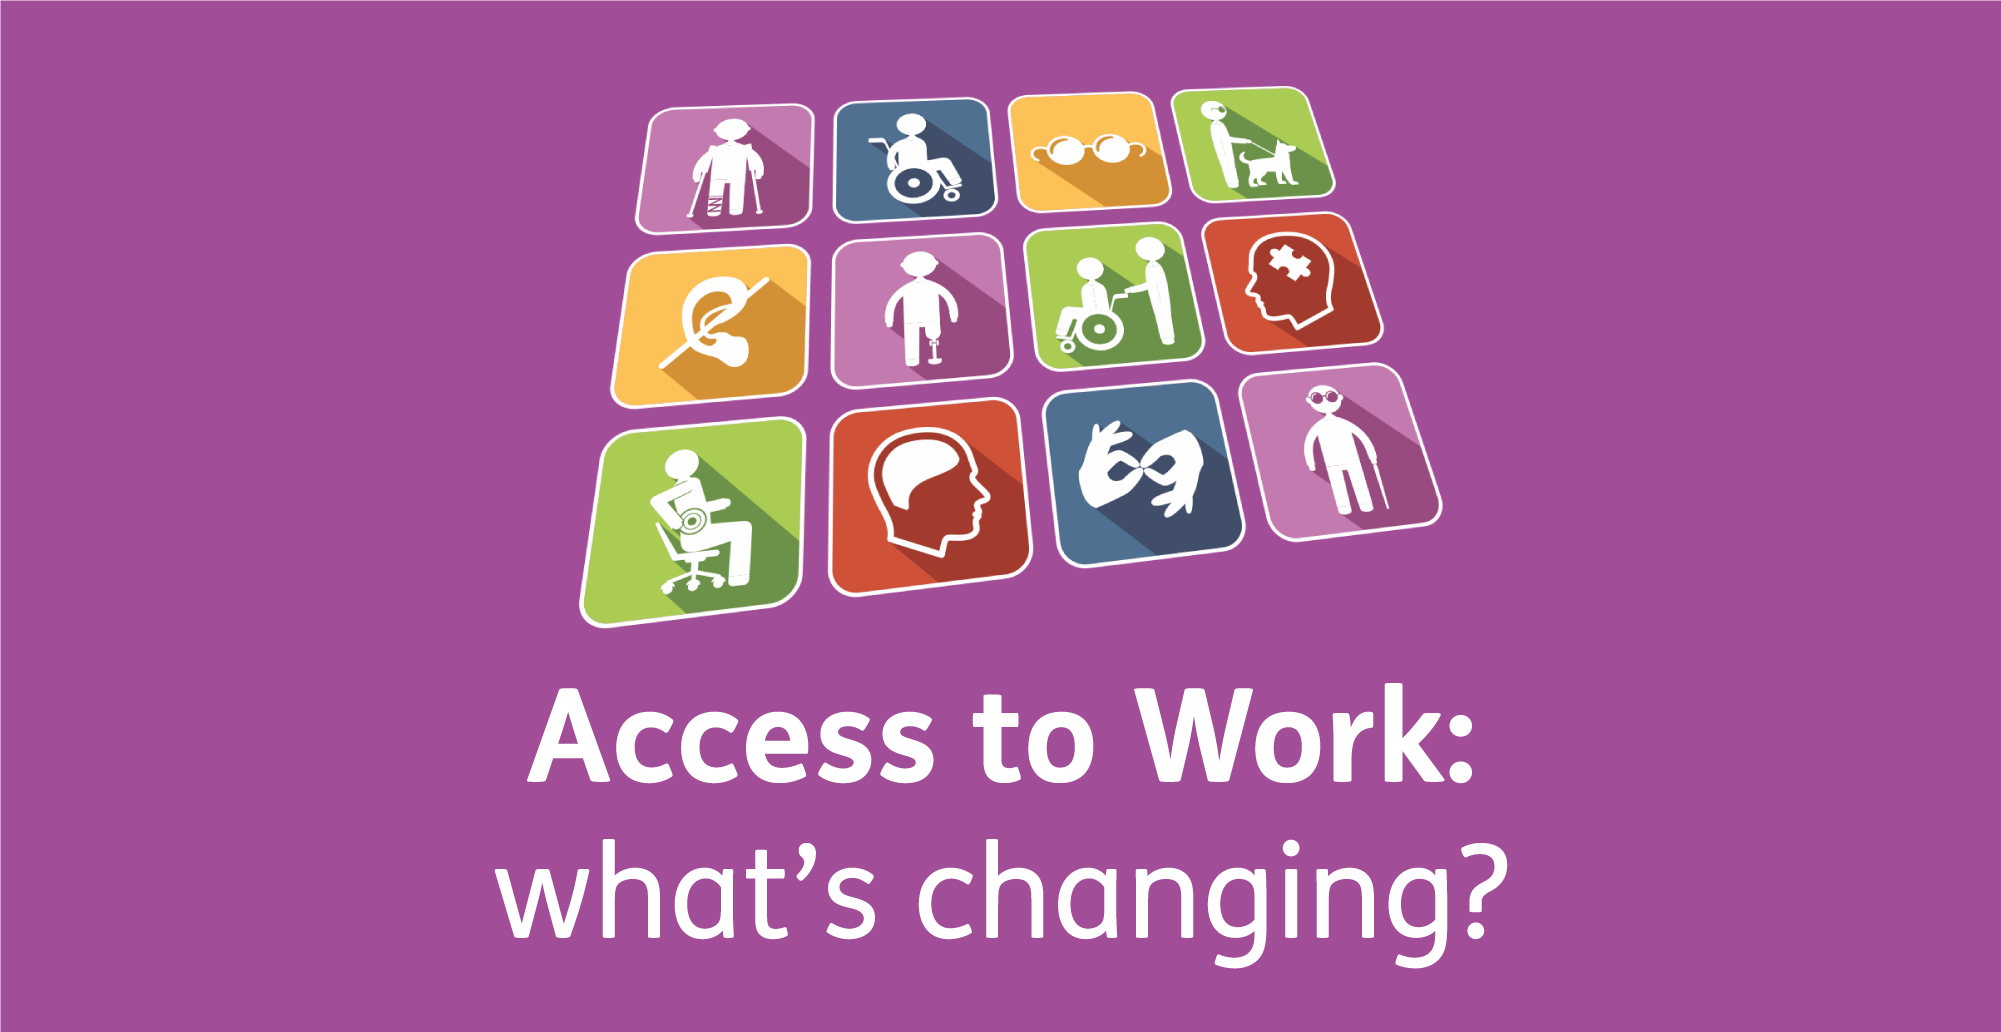 Access to Work: what's changing?